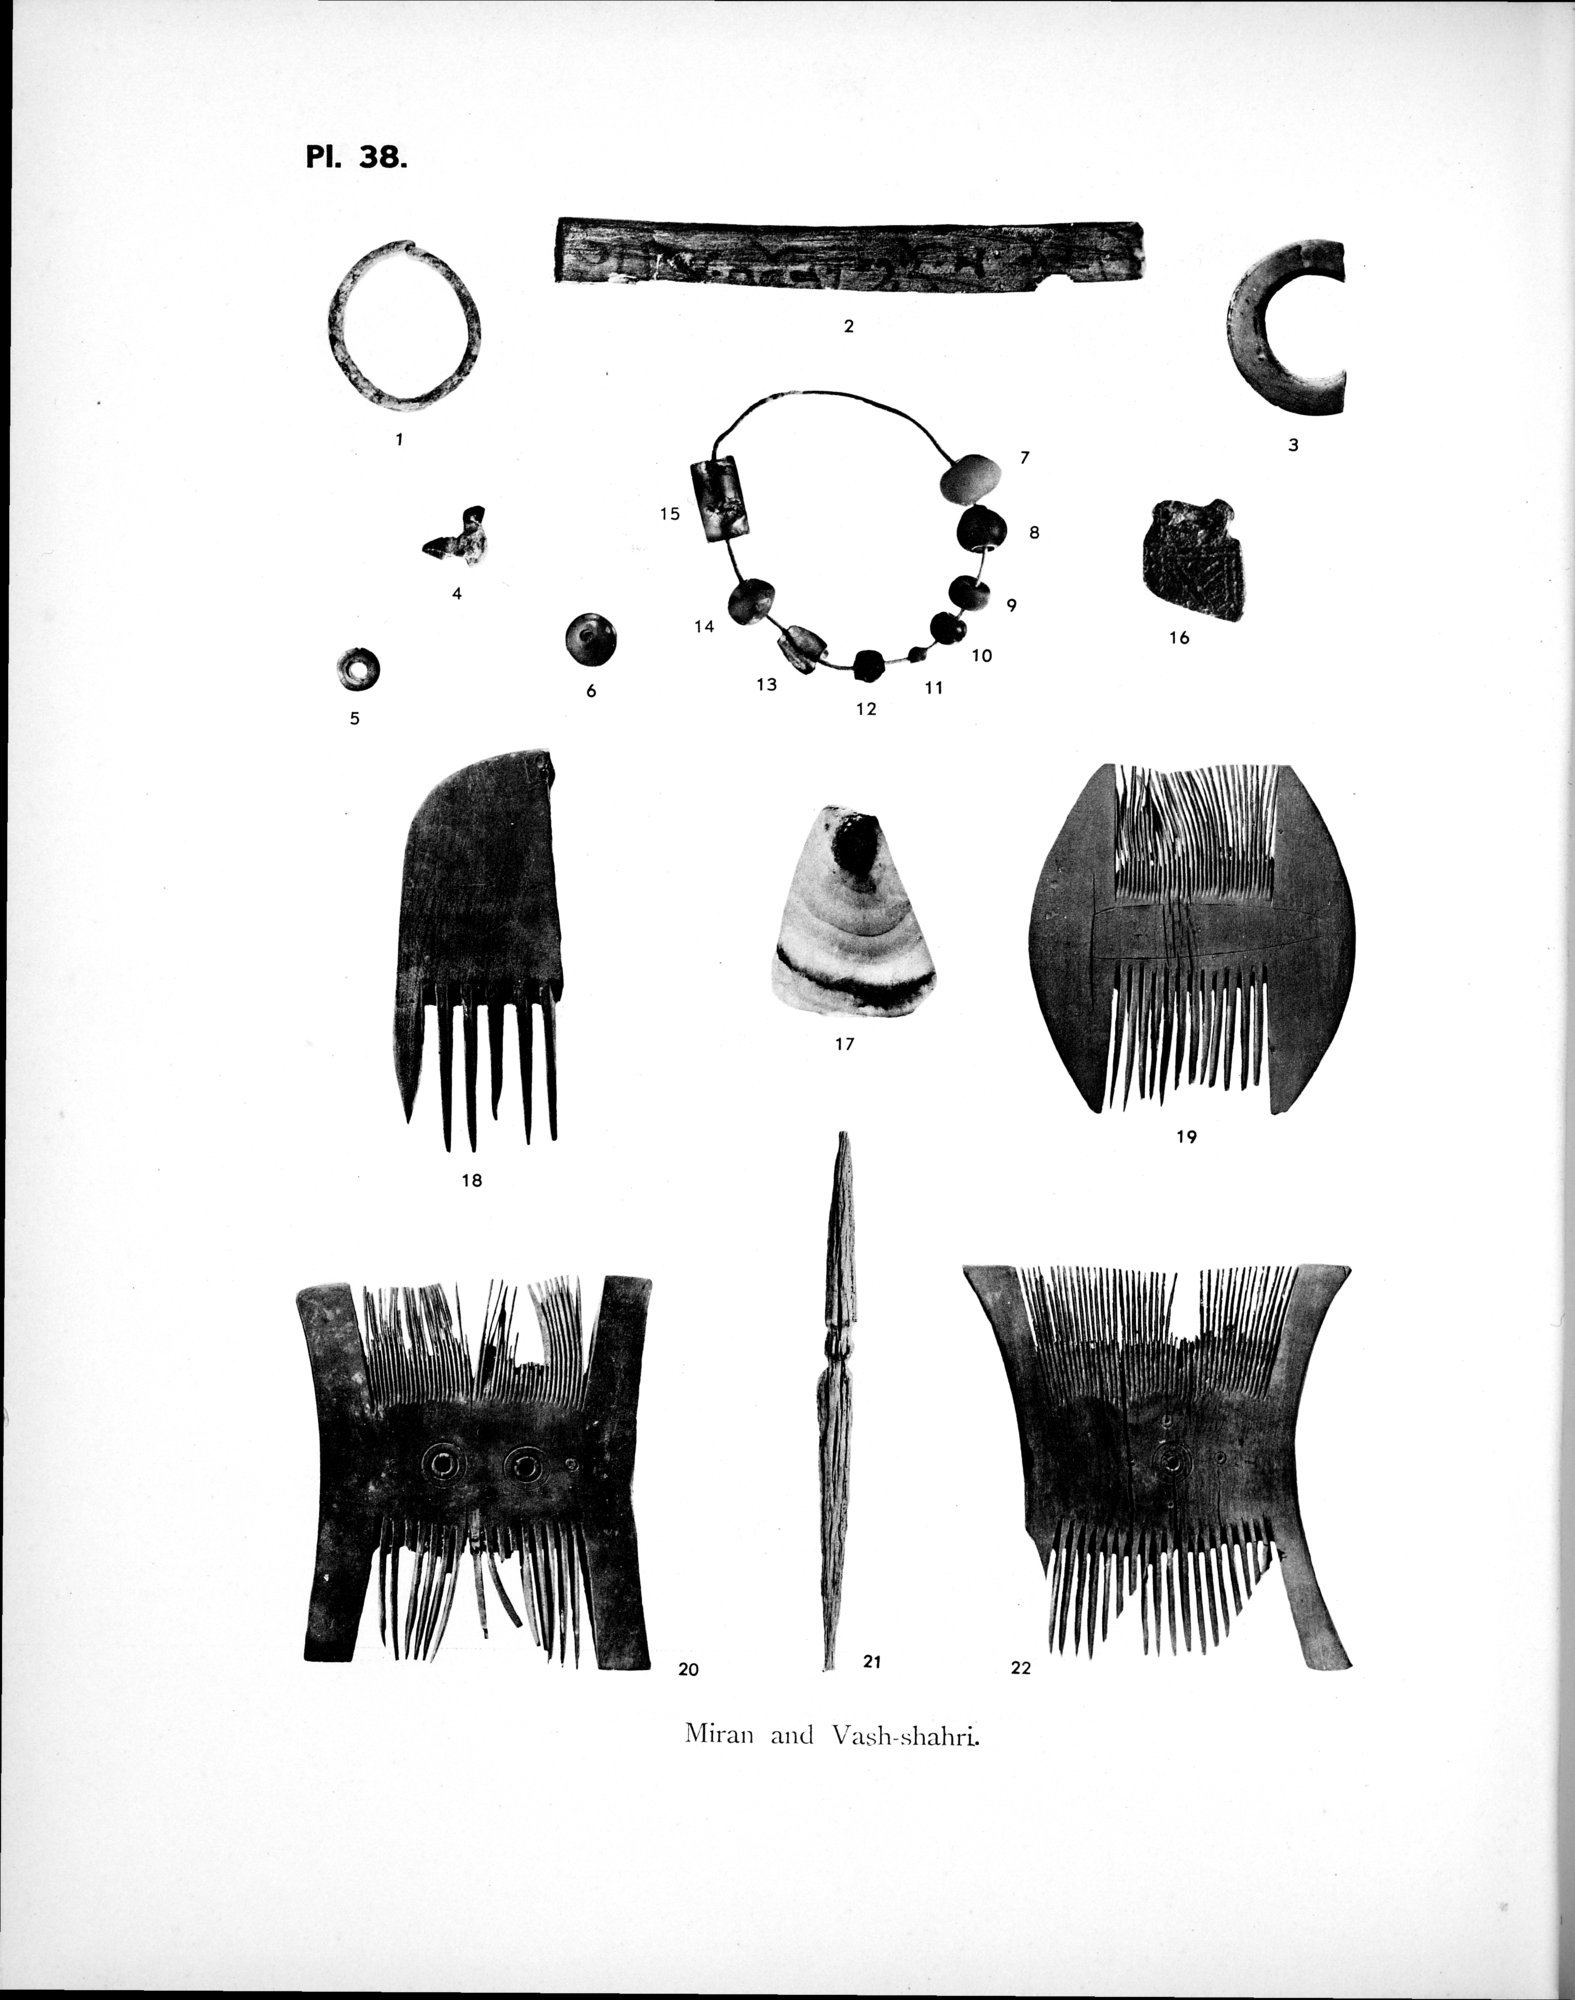 Archaeological Researches in Sinkiang : vol.1 / Page 326 (Grayscale High Resolution Image)